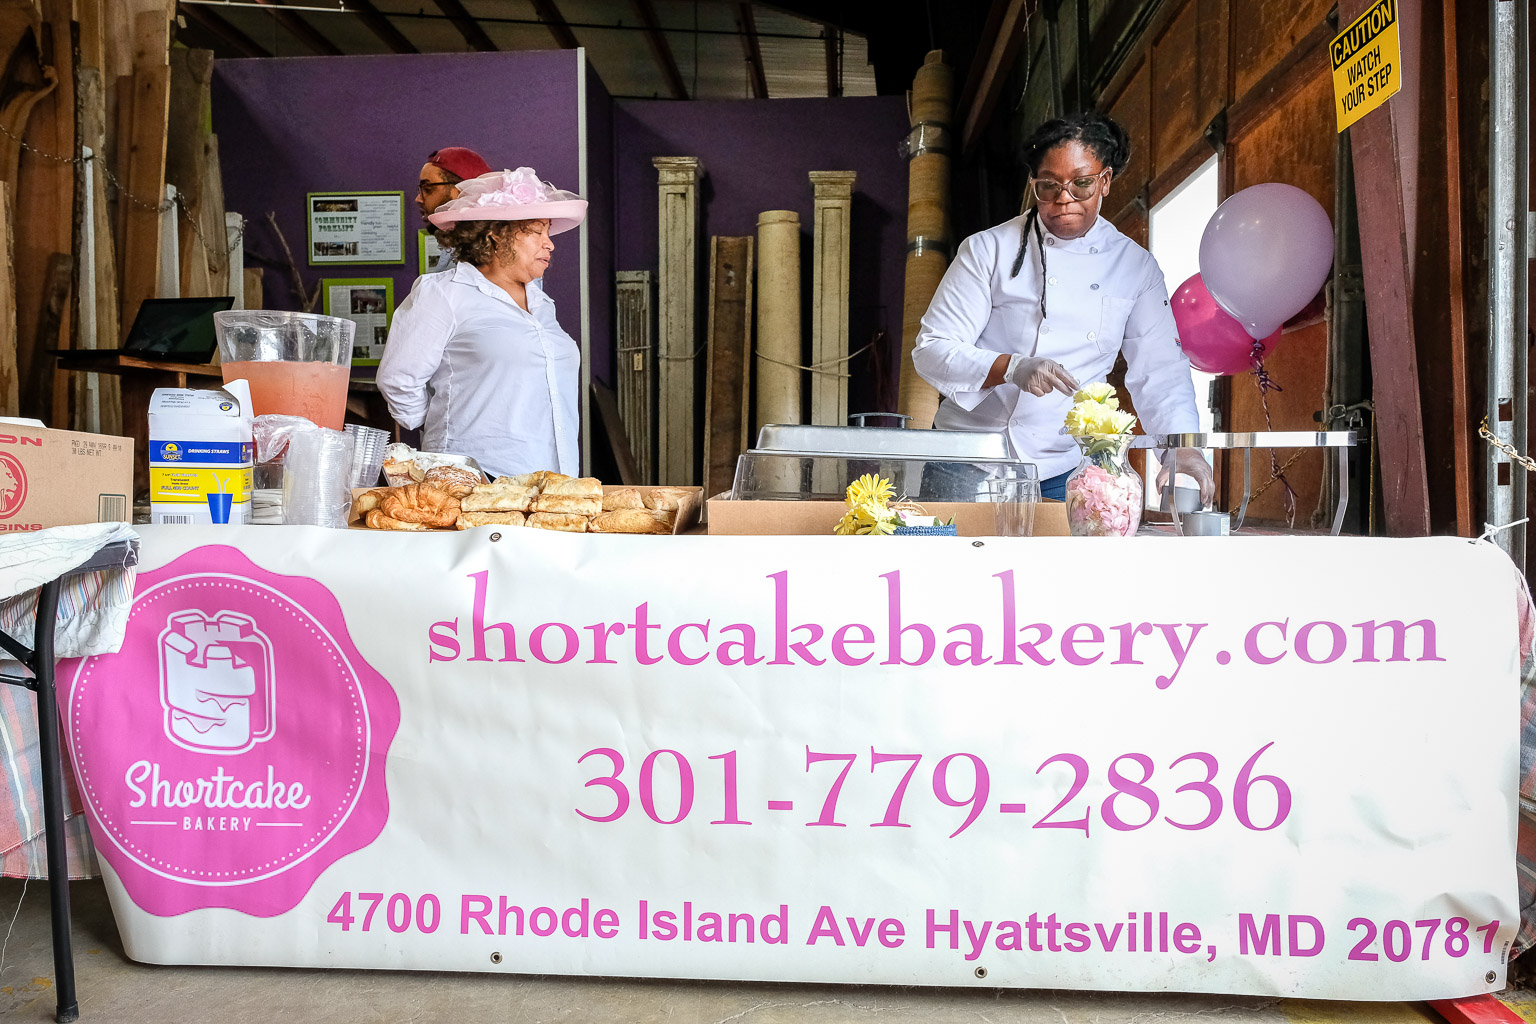 Betcha can't eat just one! I'll put a  link to their website here  for convenience, but you really need to just go visit these ladies and let the aroma of those pastries send you to your happy place.